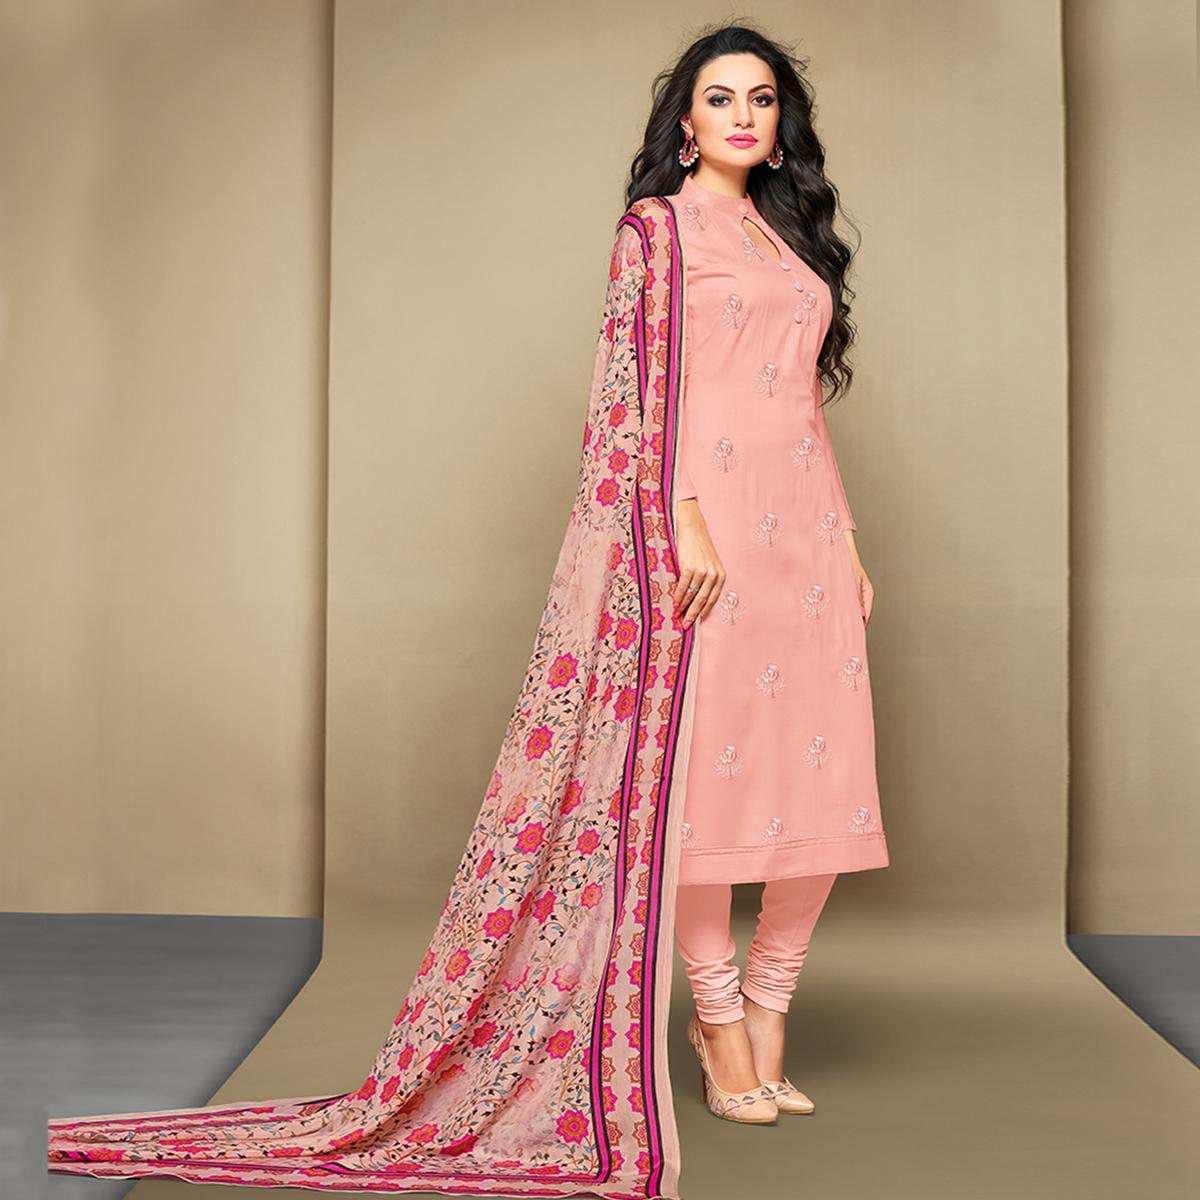 4f63693a22 Buy Imposing Baby Pink Colored Party Wear Embroidered Cotton Suit for  women's online India, Best Prices, Reviews - Peachmode